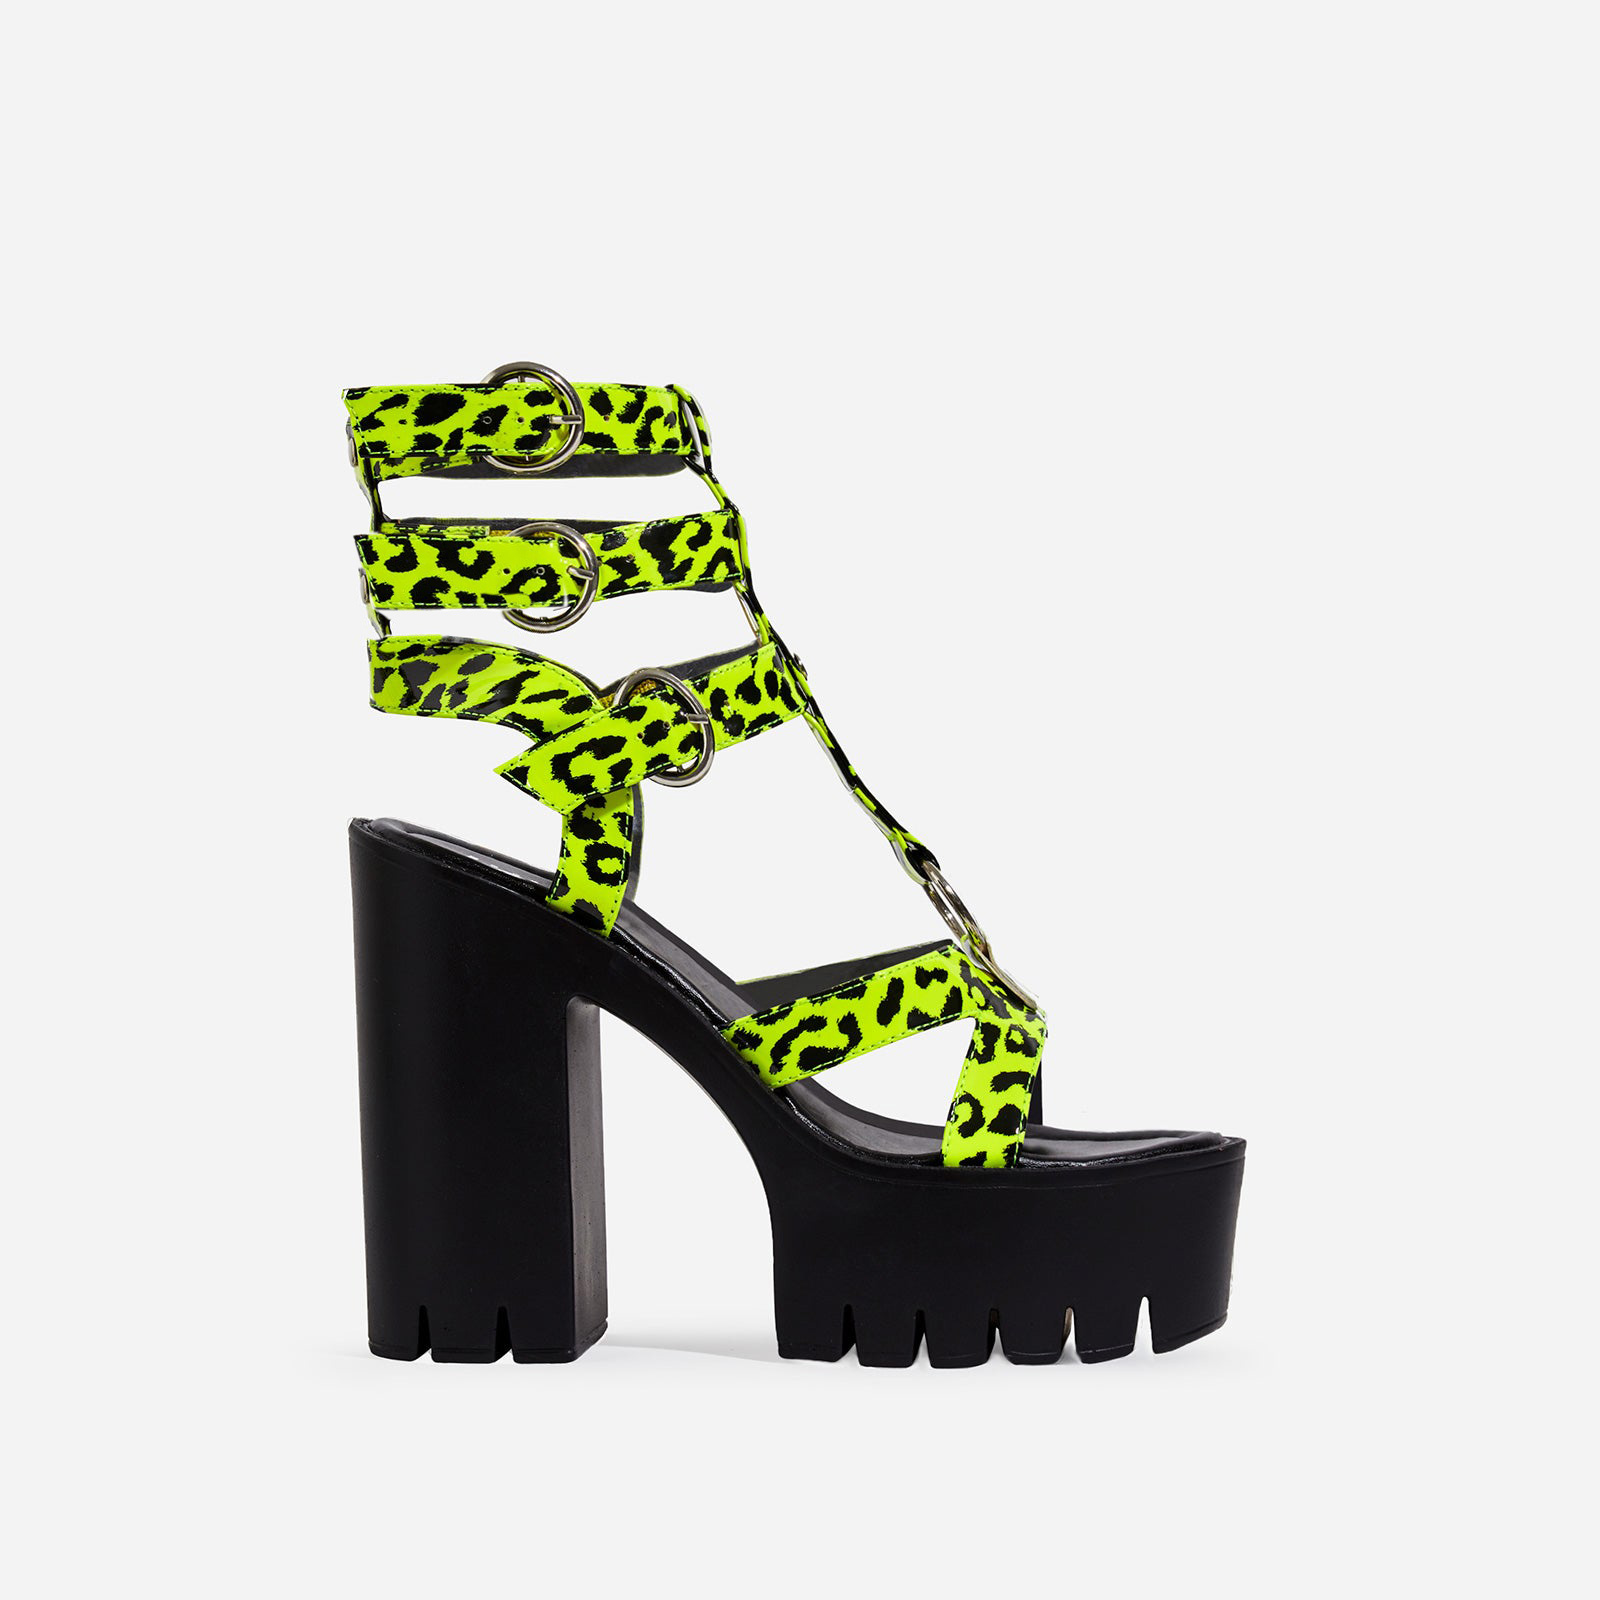 Leap Platform Cut Out Caged Heel In Neon Green Leopard Print Faux Leather